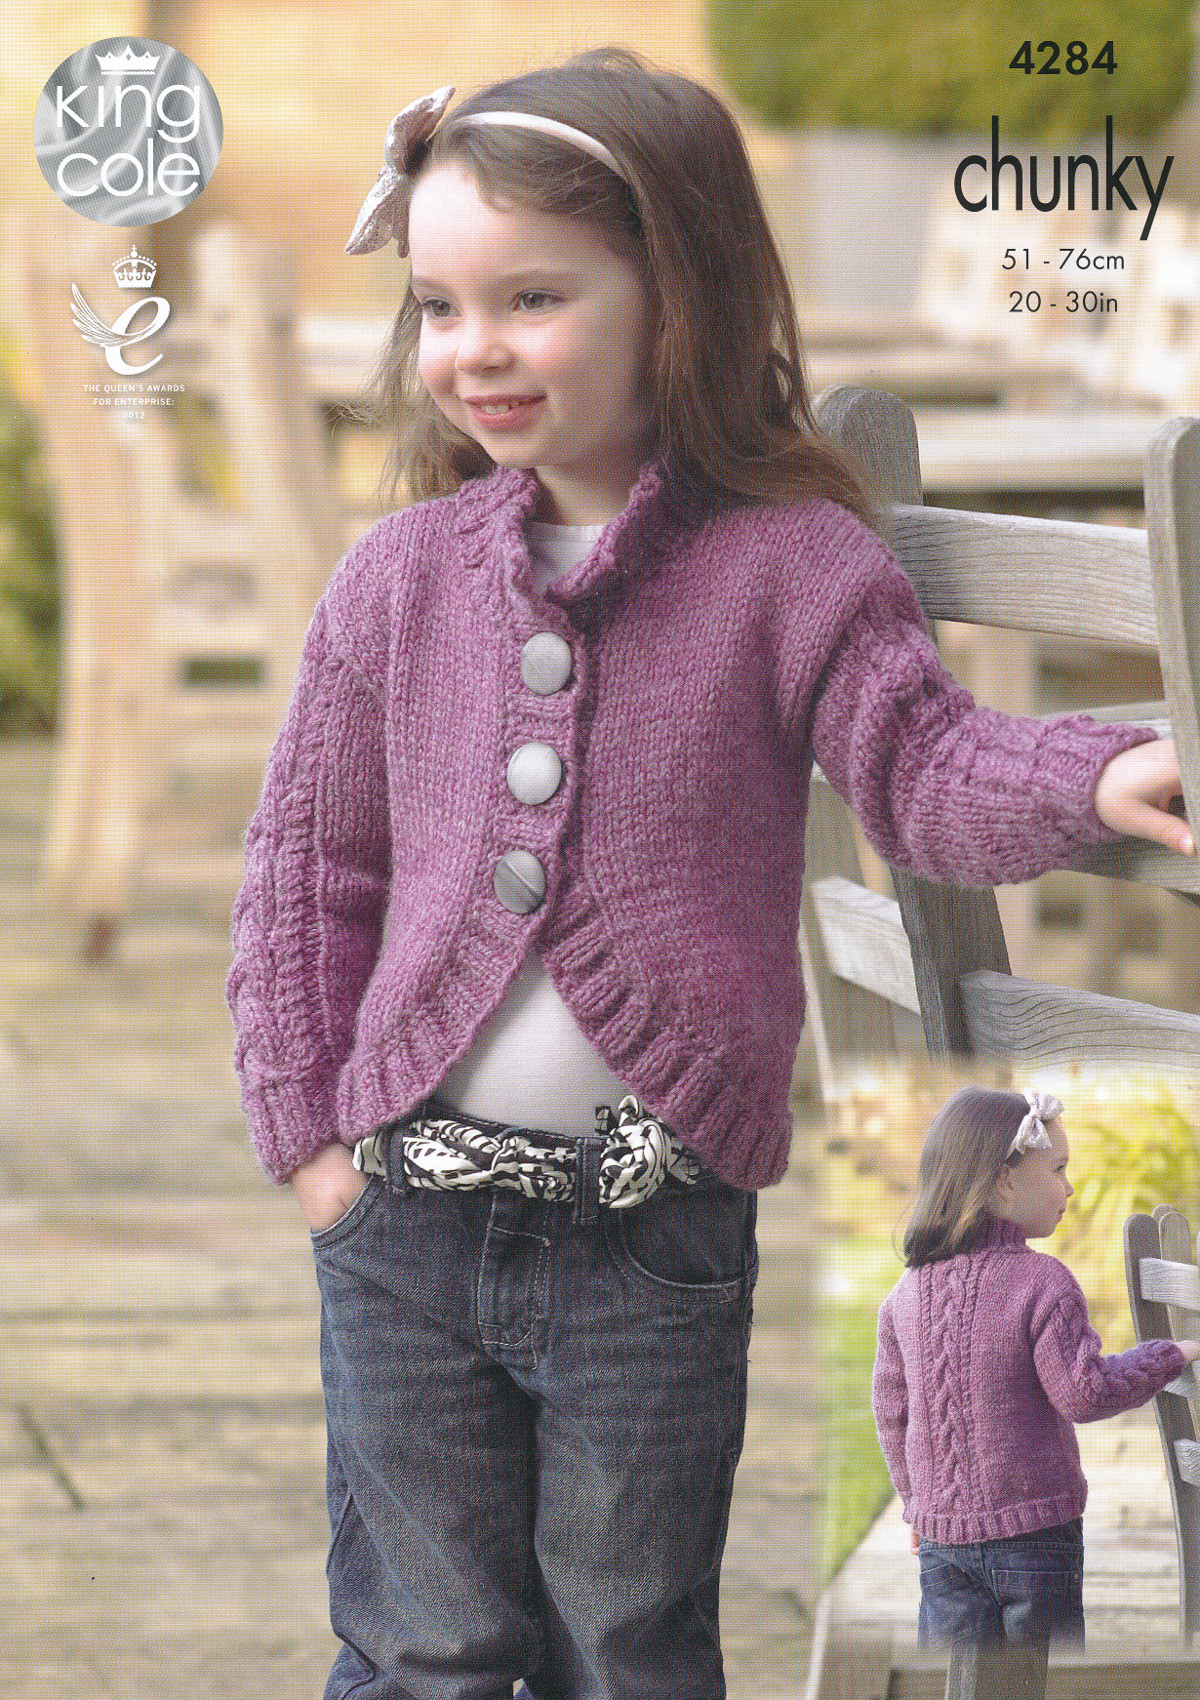 Knitted Childrens Sweaters Free Patterns Details About Kids Chunky Knitting Pattern King Cole Childrens Collar V Neck Cardigans 4284